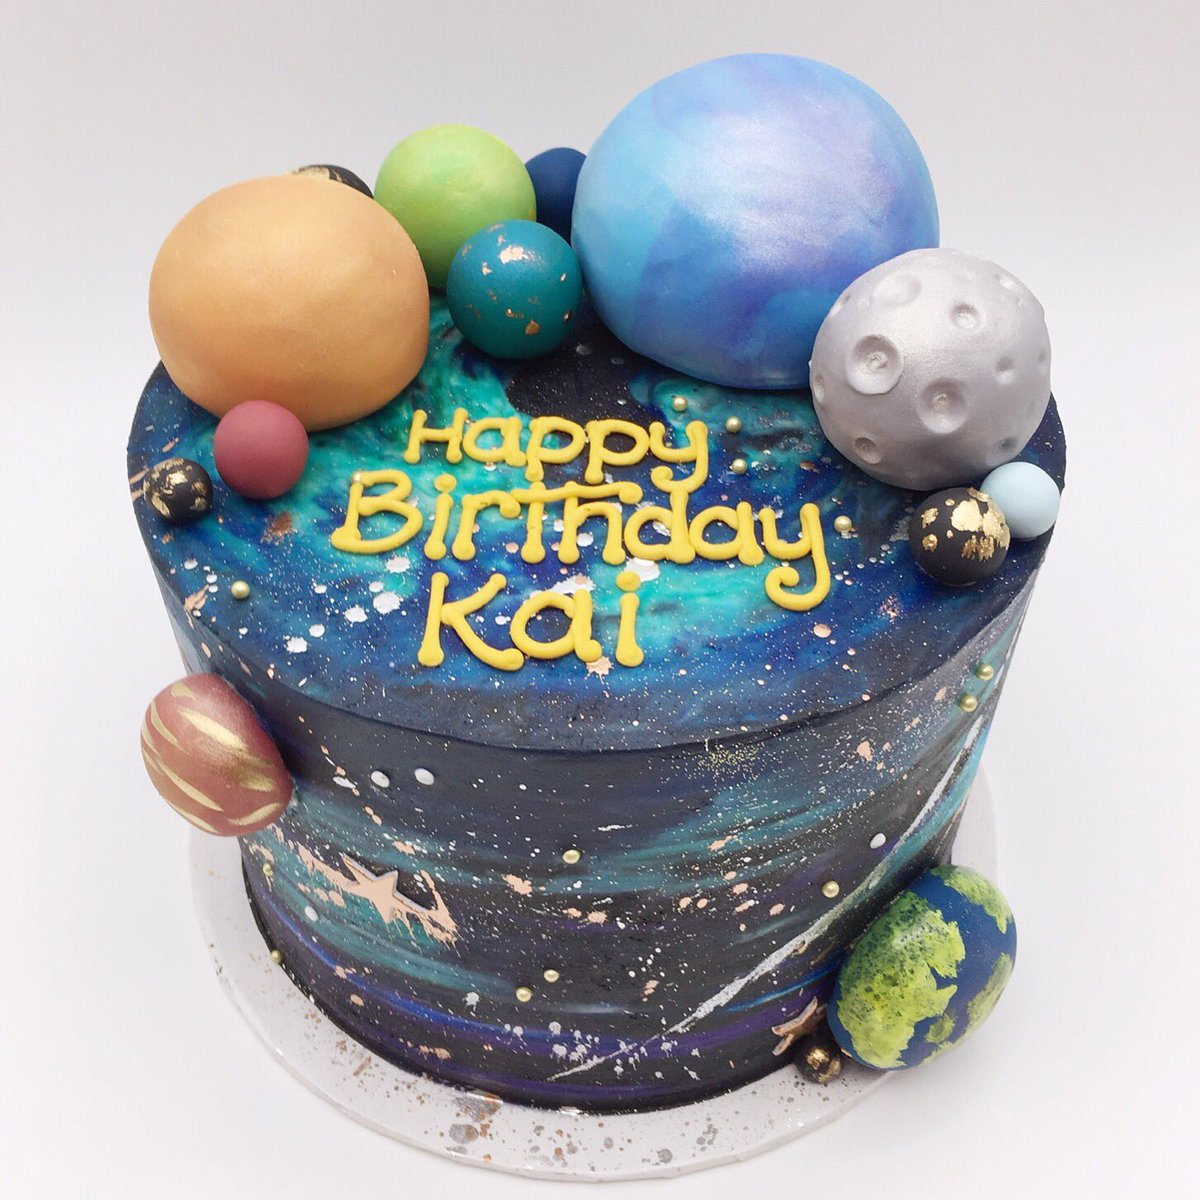 Stupendous 3 Sweet Girls Cakery On Twitter This Outer Space Birthday Cake Funny Birthday Cards Online Inifofree Goldxyz